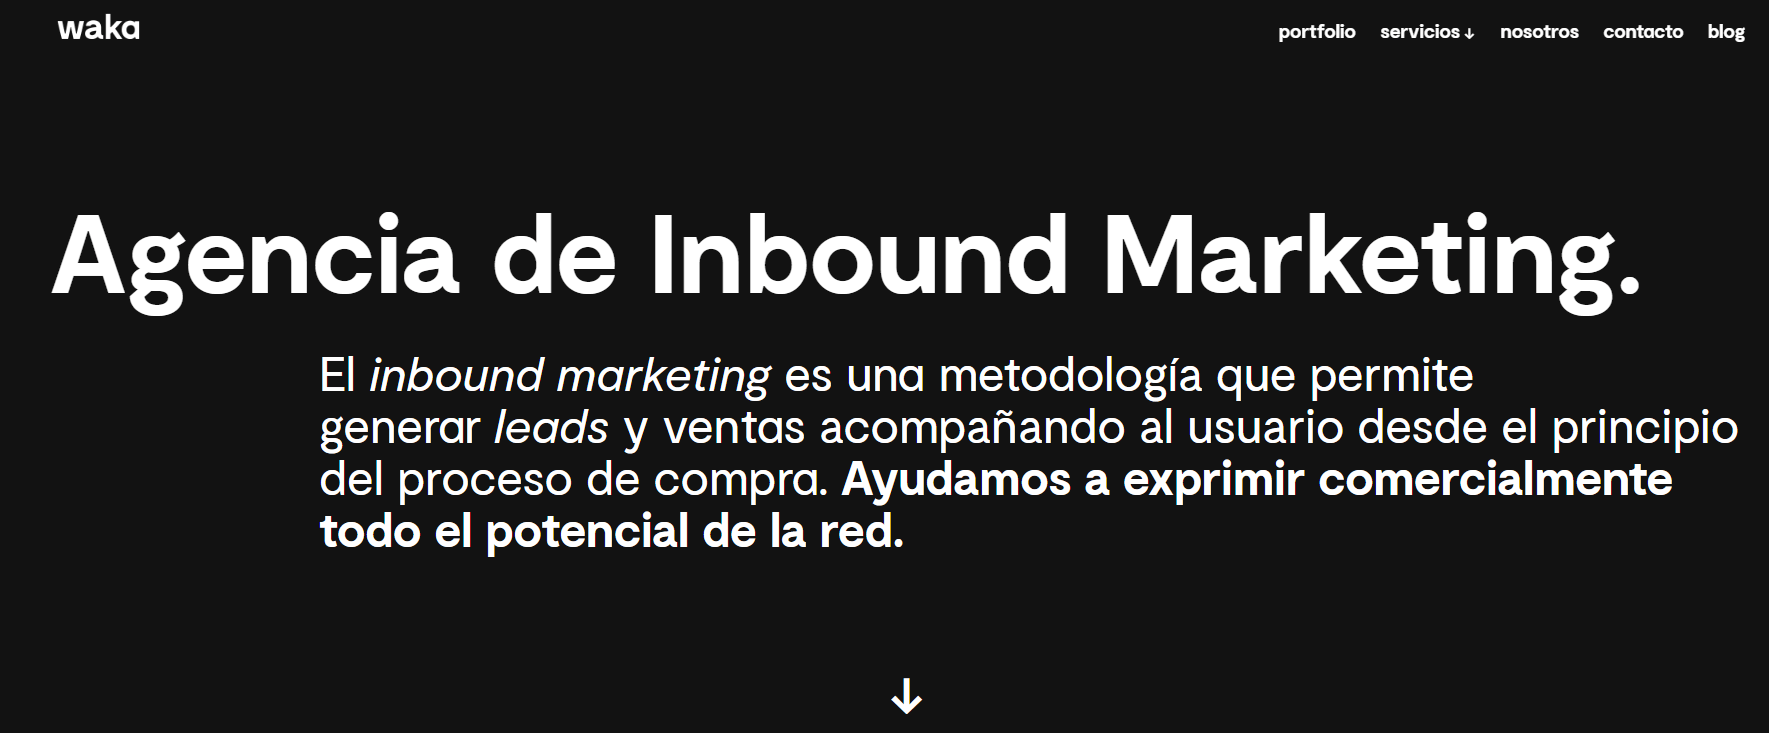 agencias de inbound marketing